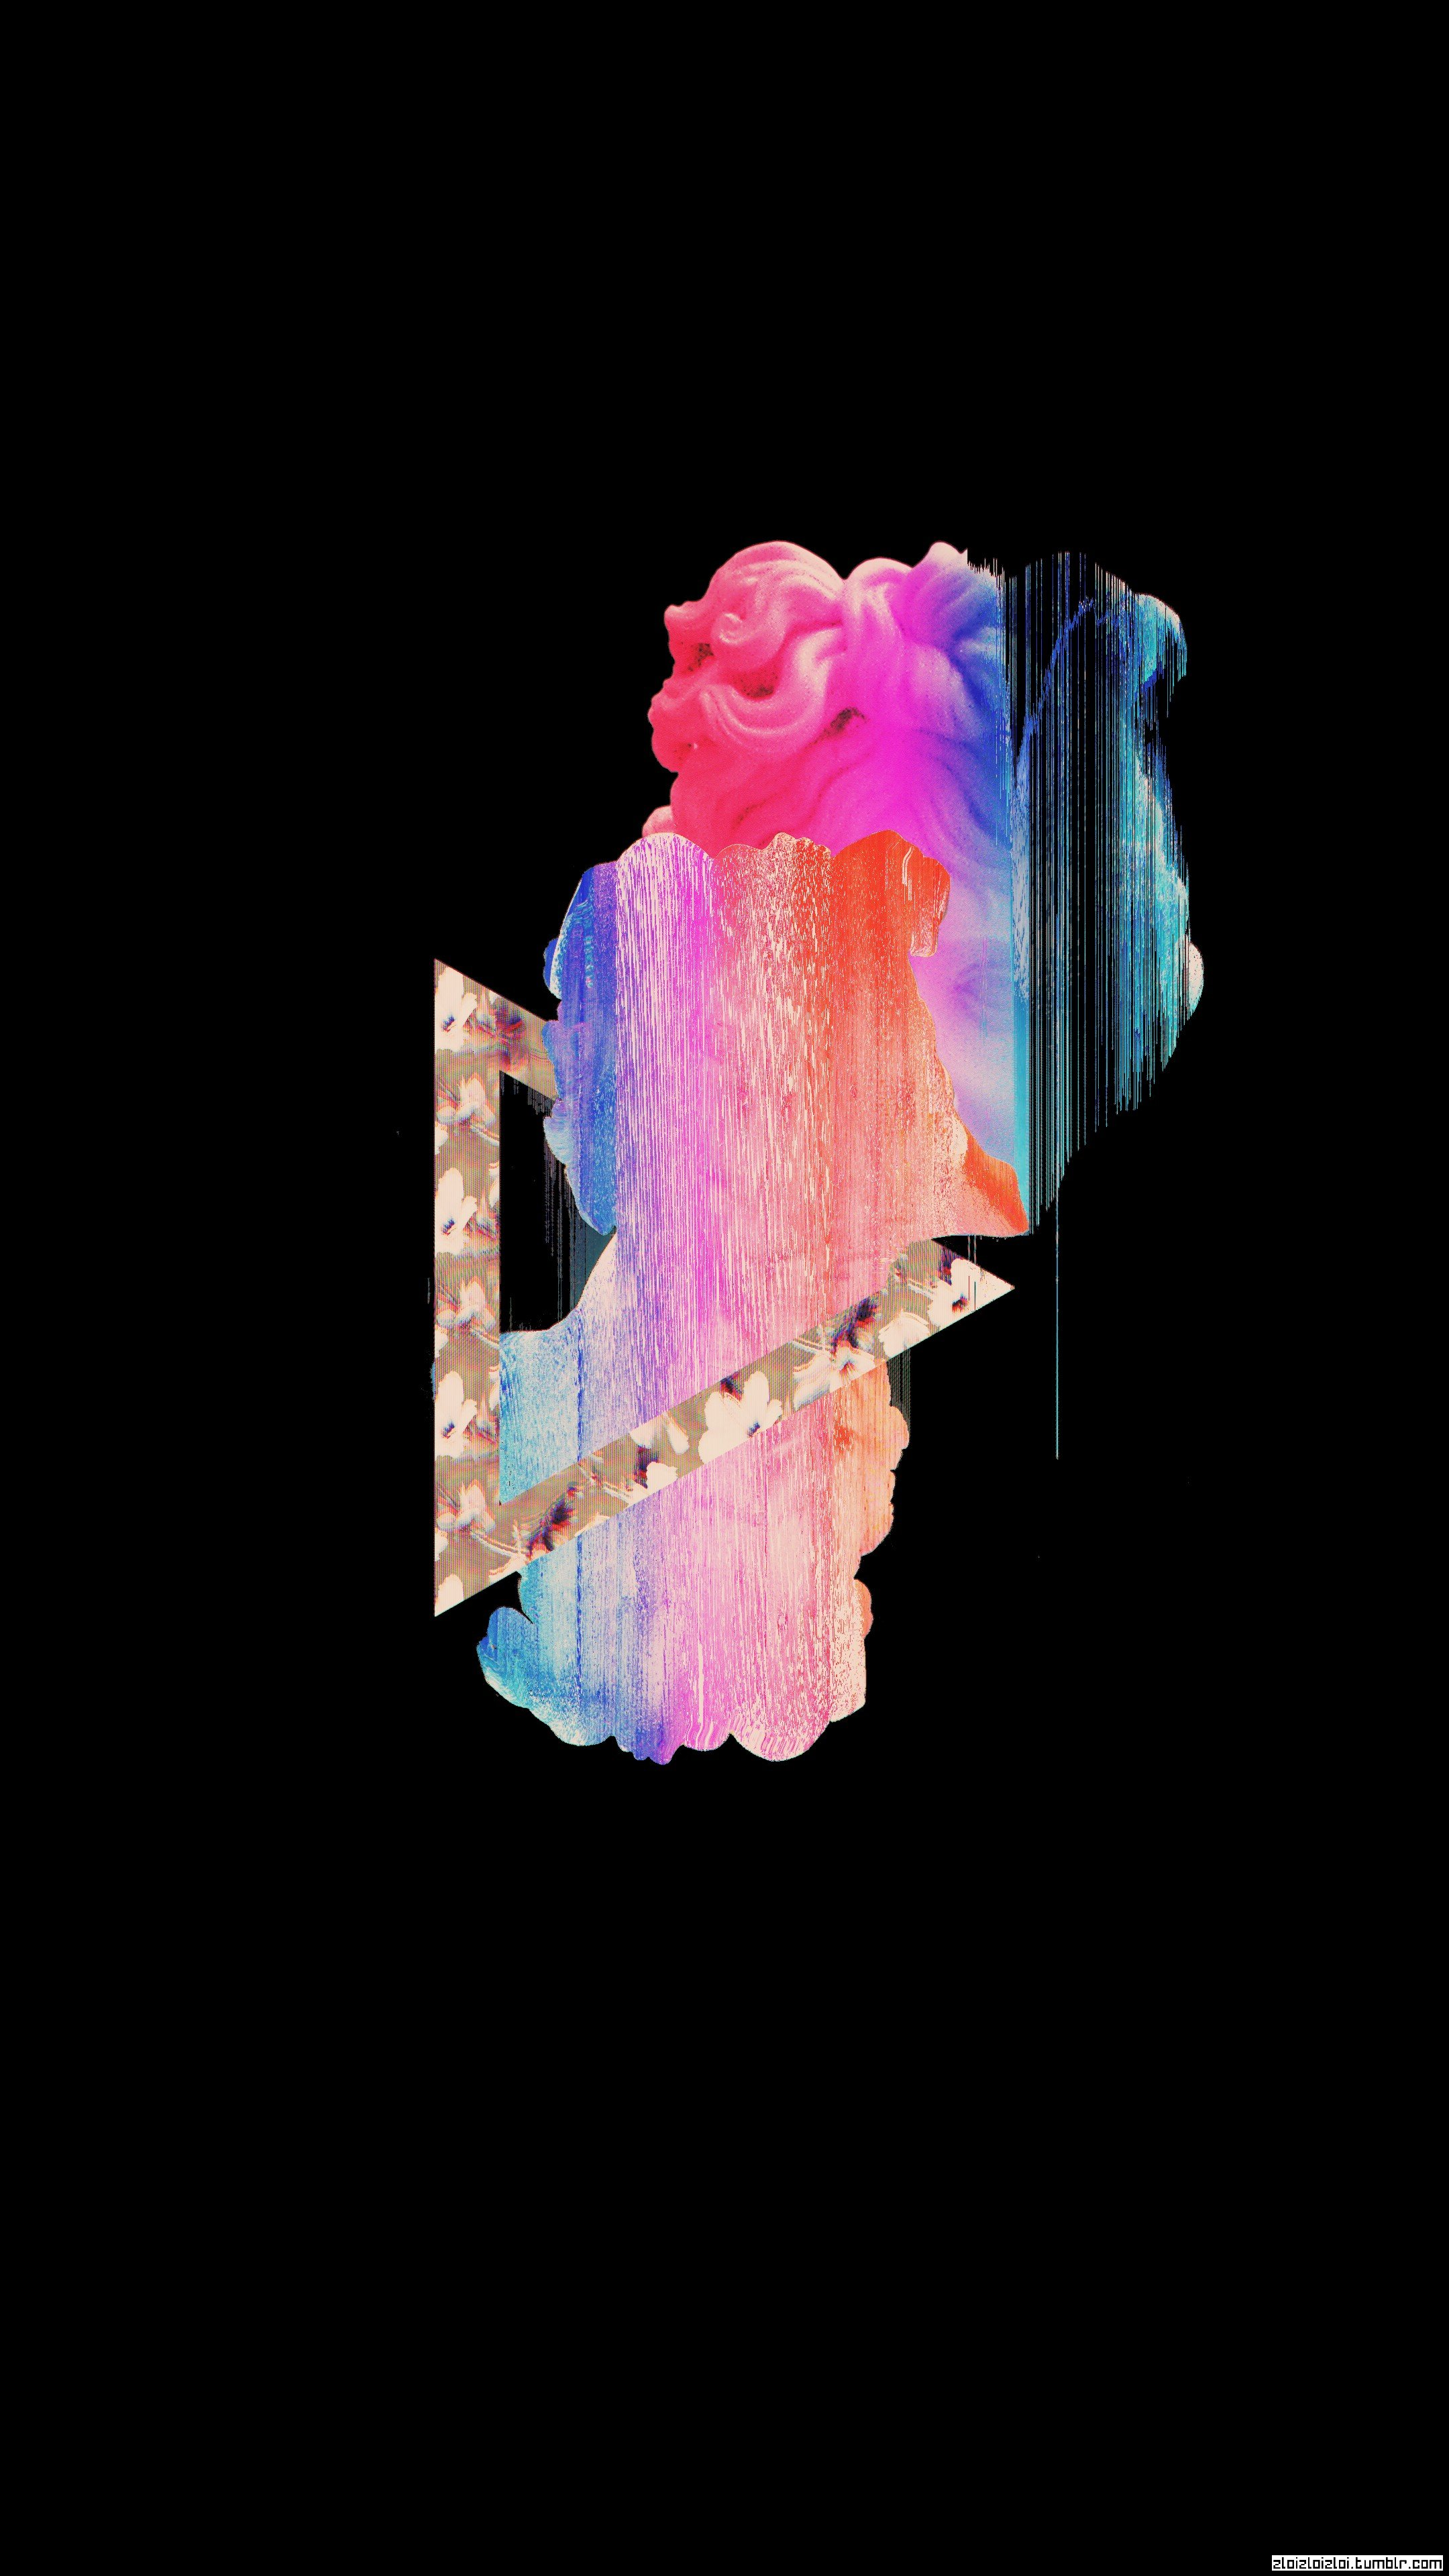 glitch art, Black, Abstract, Vaporwave HD Wallpapers ...